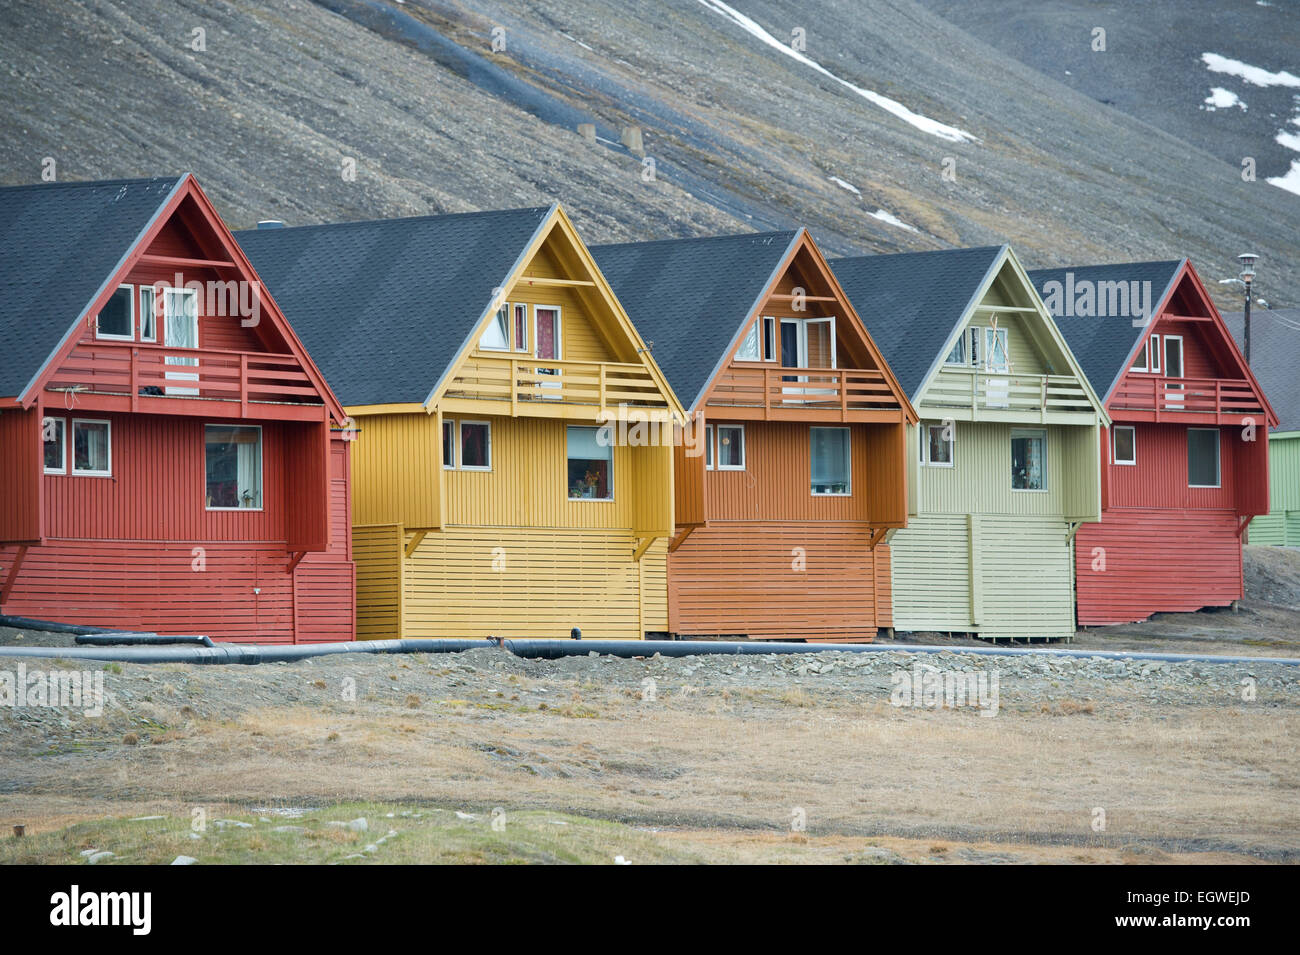 A row of colourful wooden Norwegian houses in the town of Longyearbyen on Spitsbergen, Svalbard - Stock Image